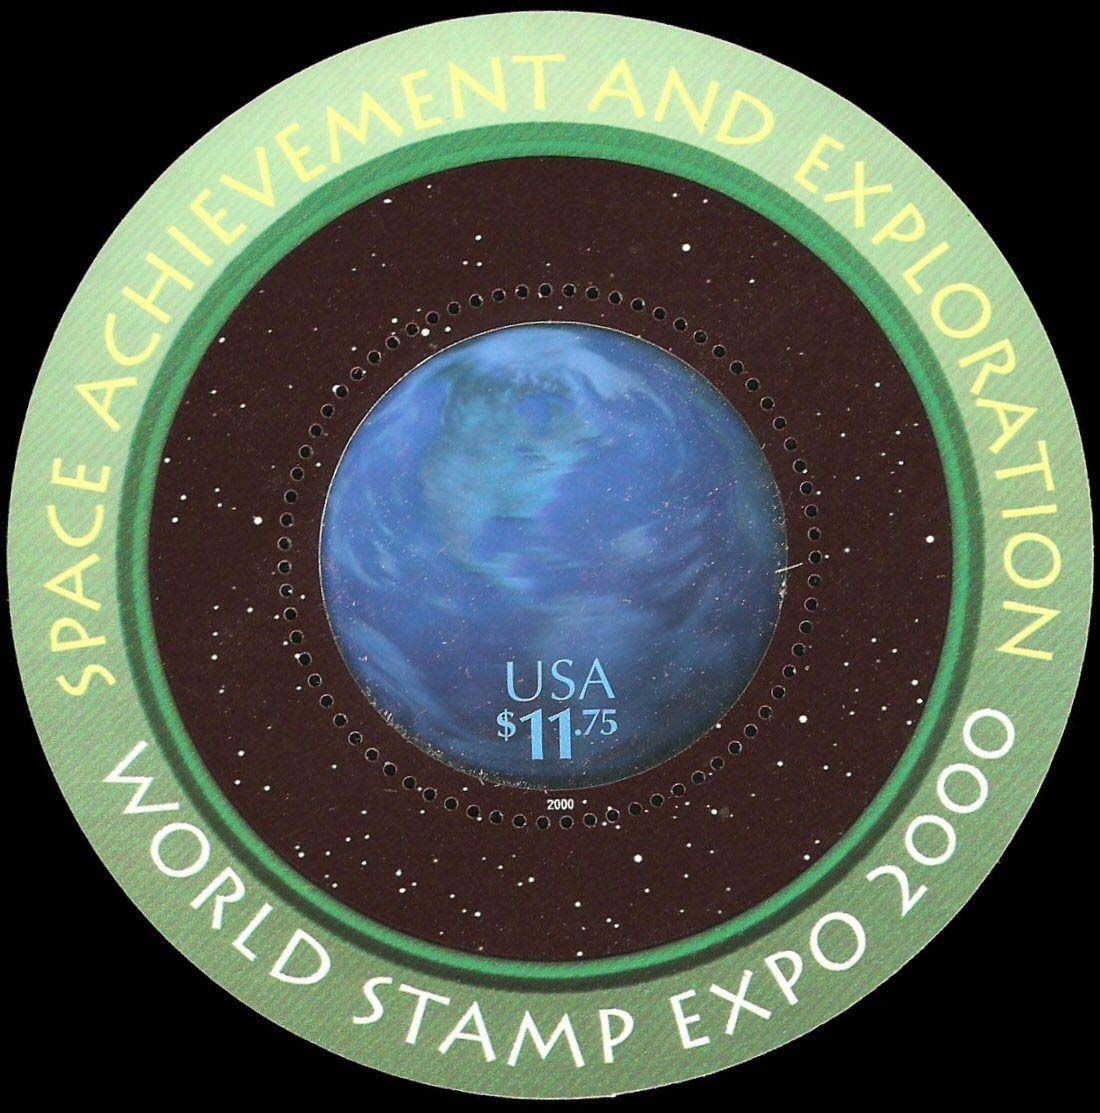 "Scott 3412 Space Exploration, circular holographic stamp, Sheet (Face 11.75) <p> <a href=""/images/USA-Scott-3412-Sheet.jpg""><font color=green><b>View the image</a></b></font>"